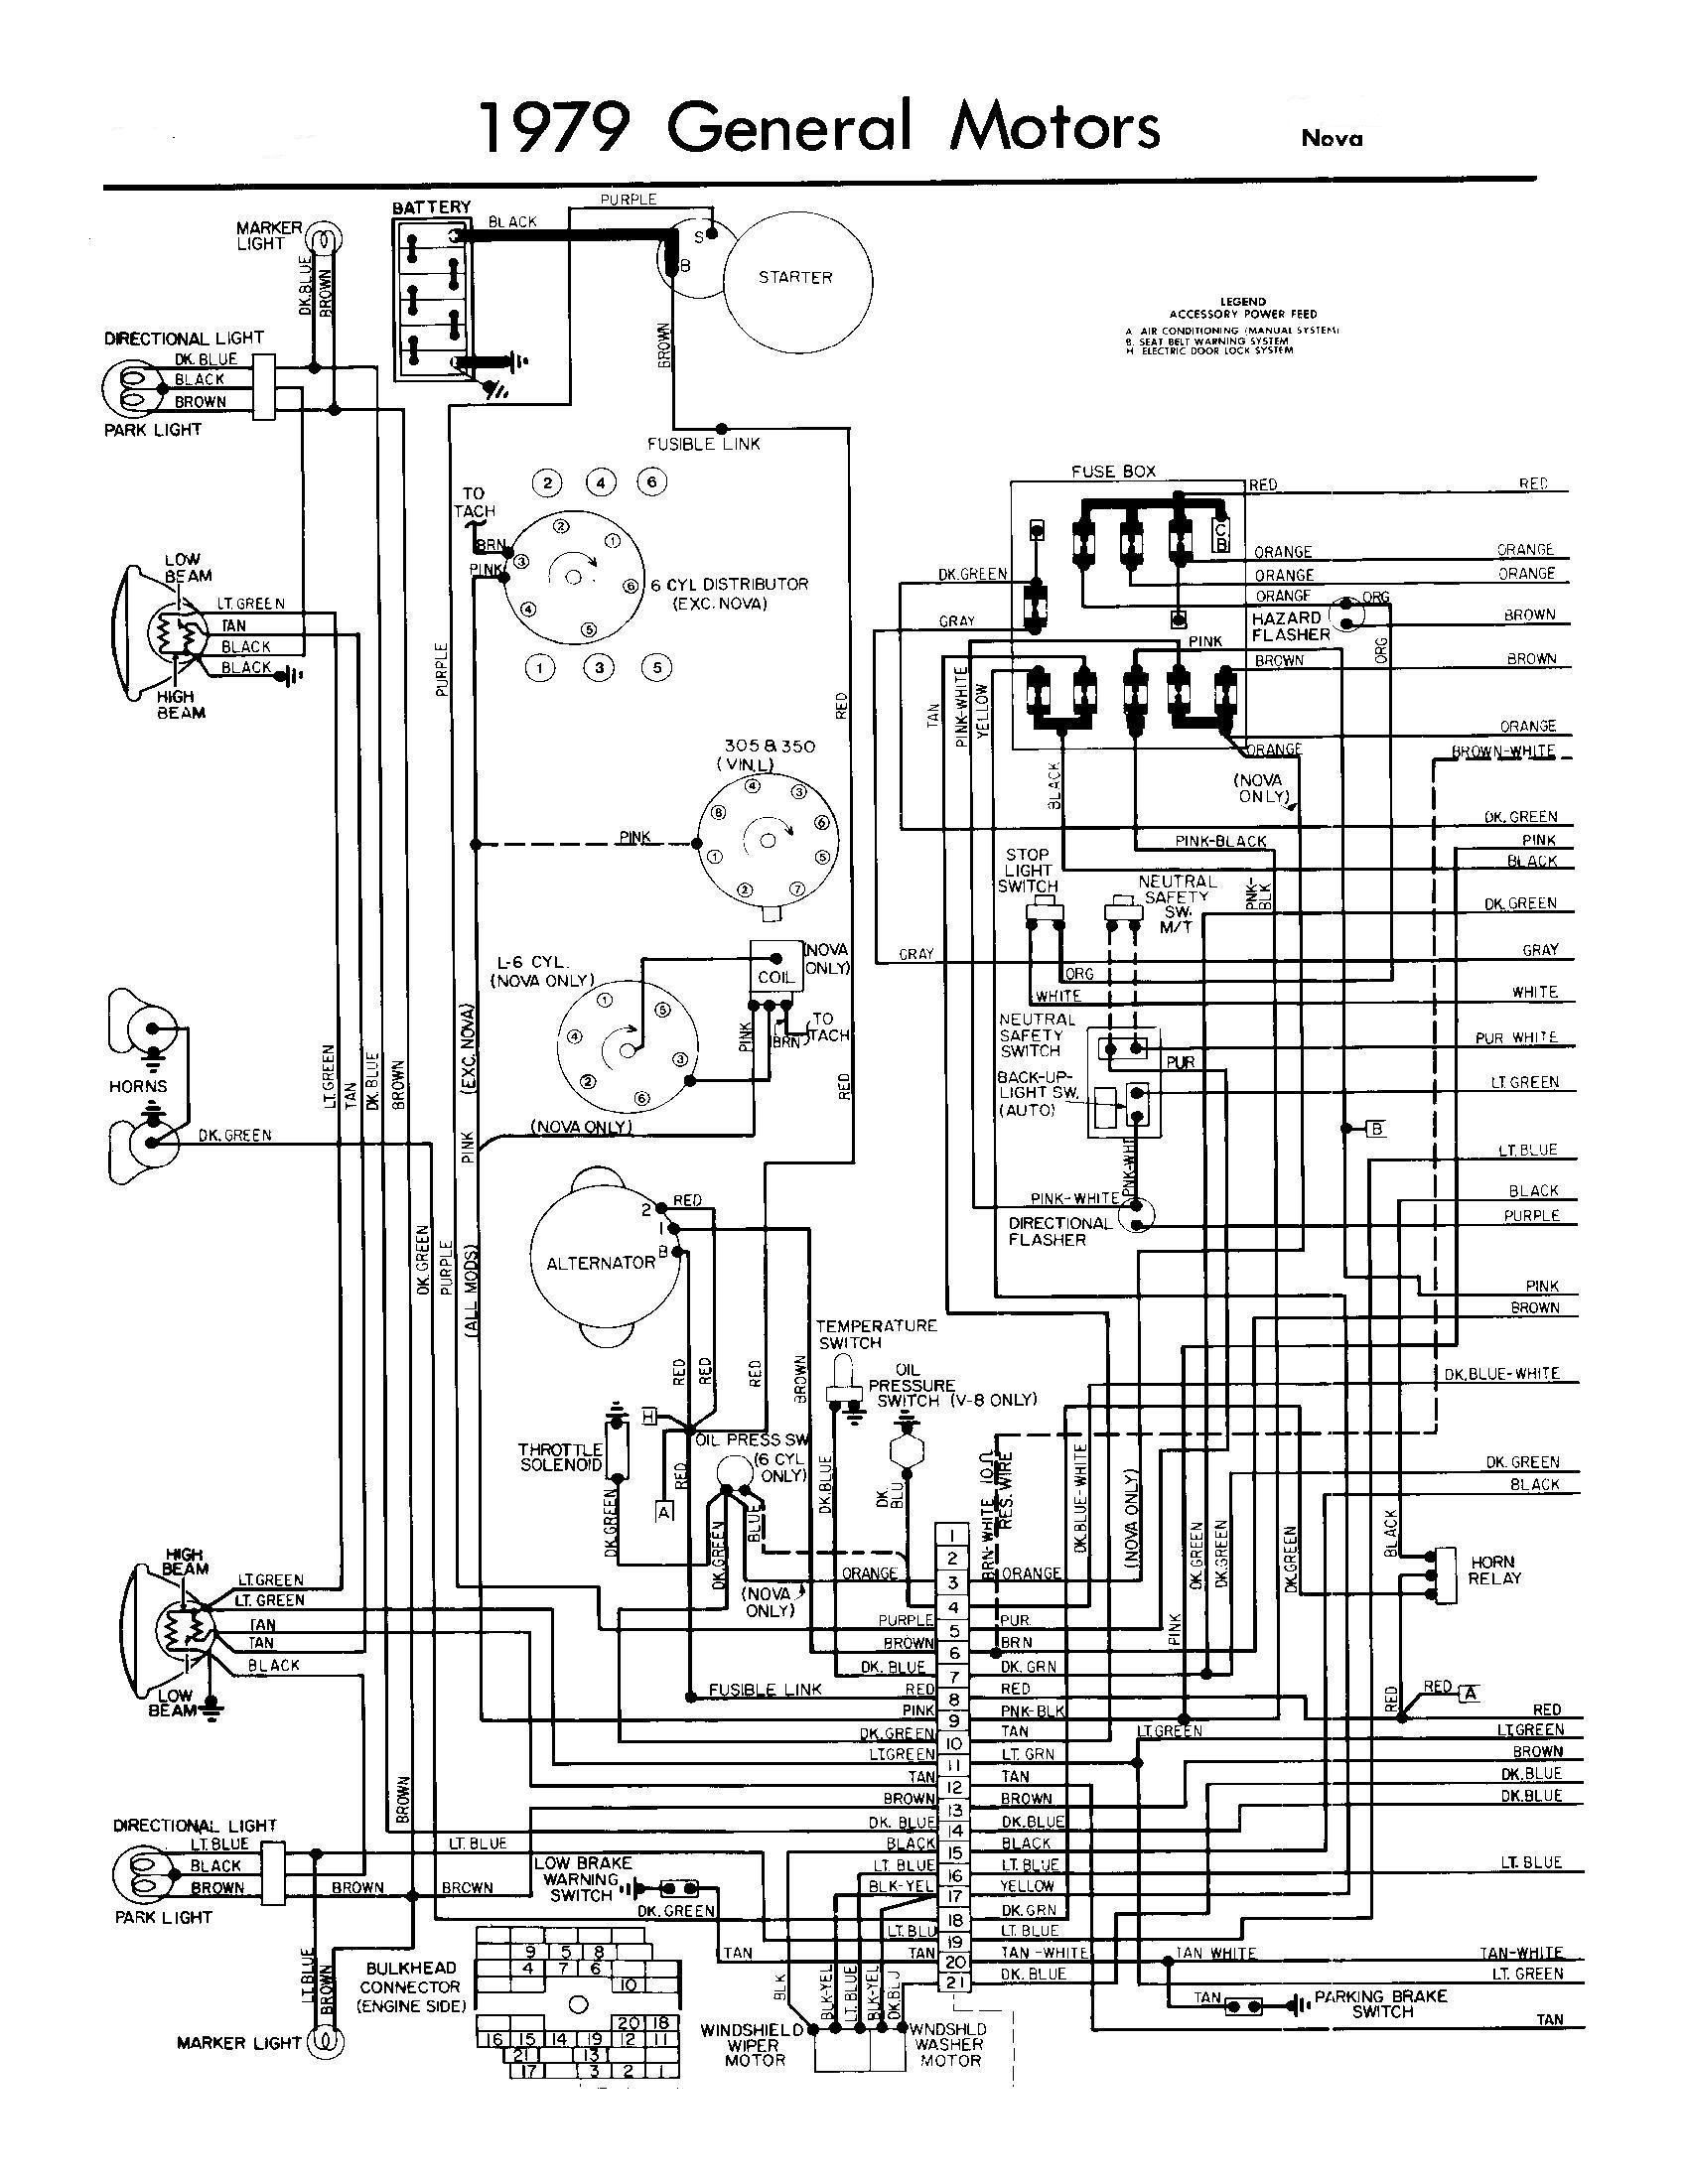 70 camaro fuse box diagram wiring diagram list70 camaro fuse box diagram wiring diagram basic 1970 [ 1699 x 2200 Pixel ]